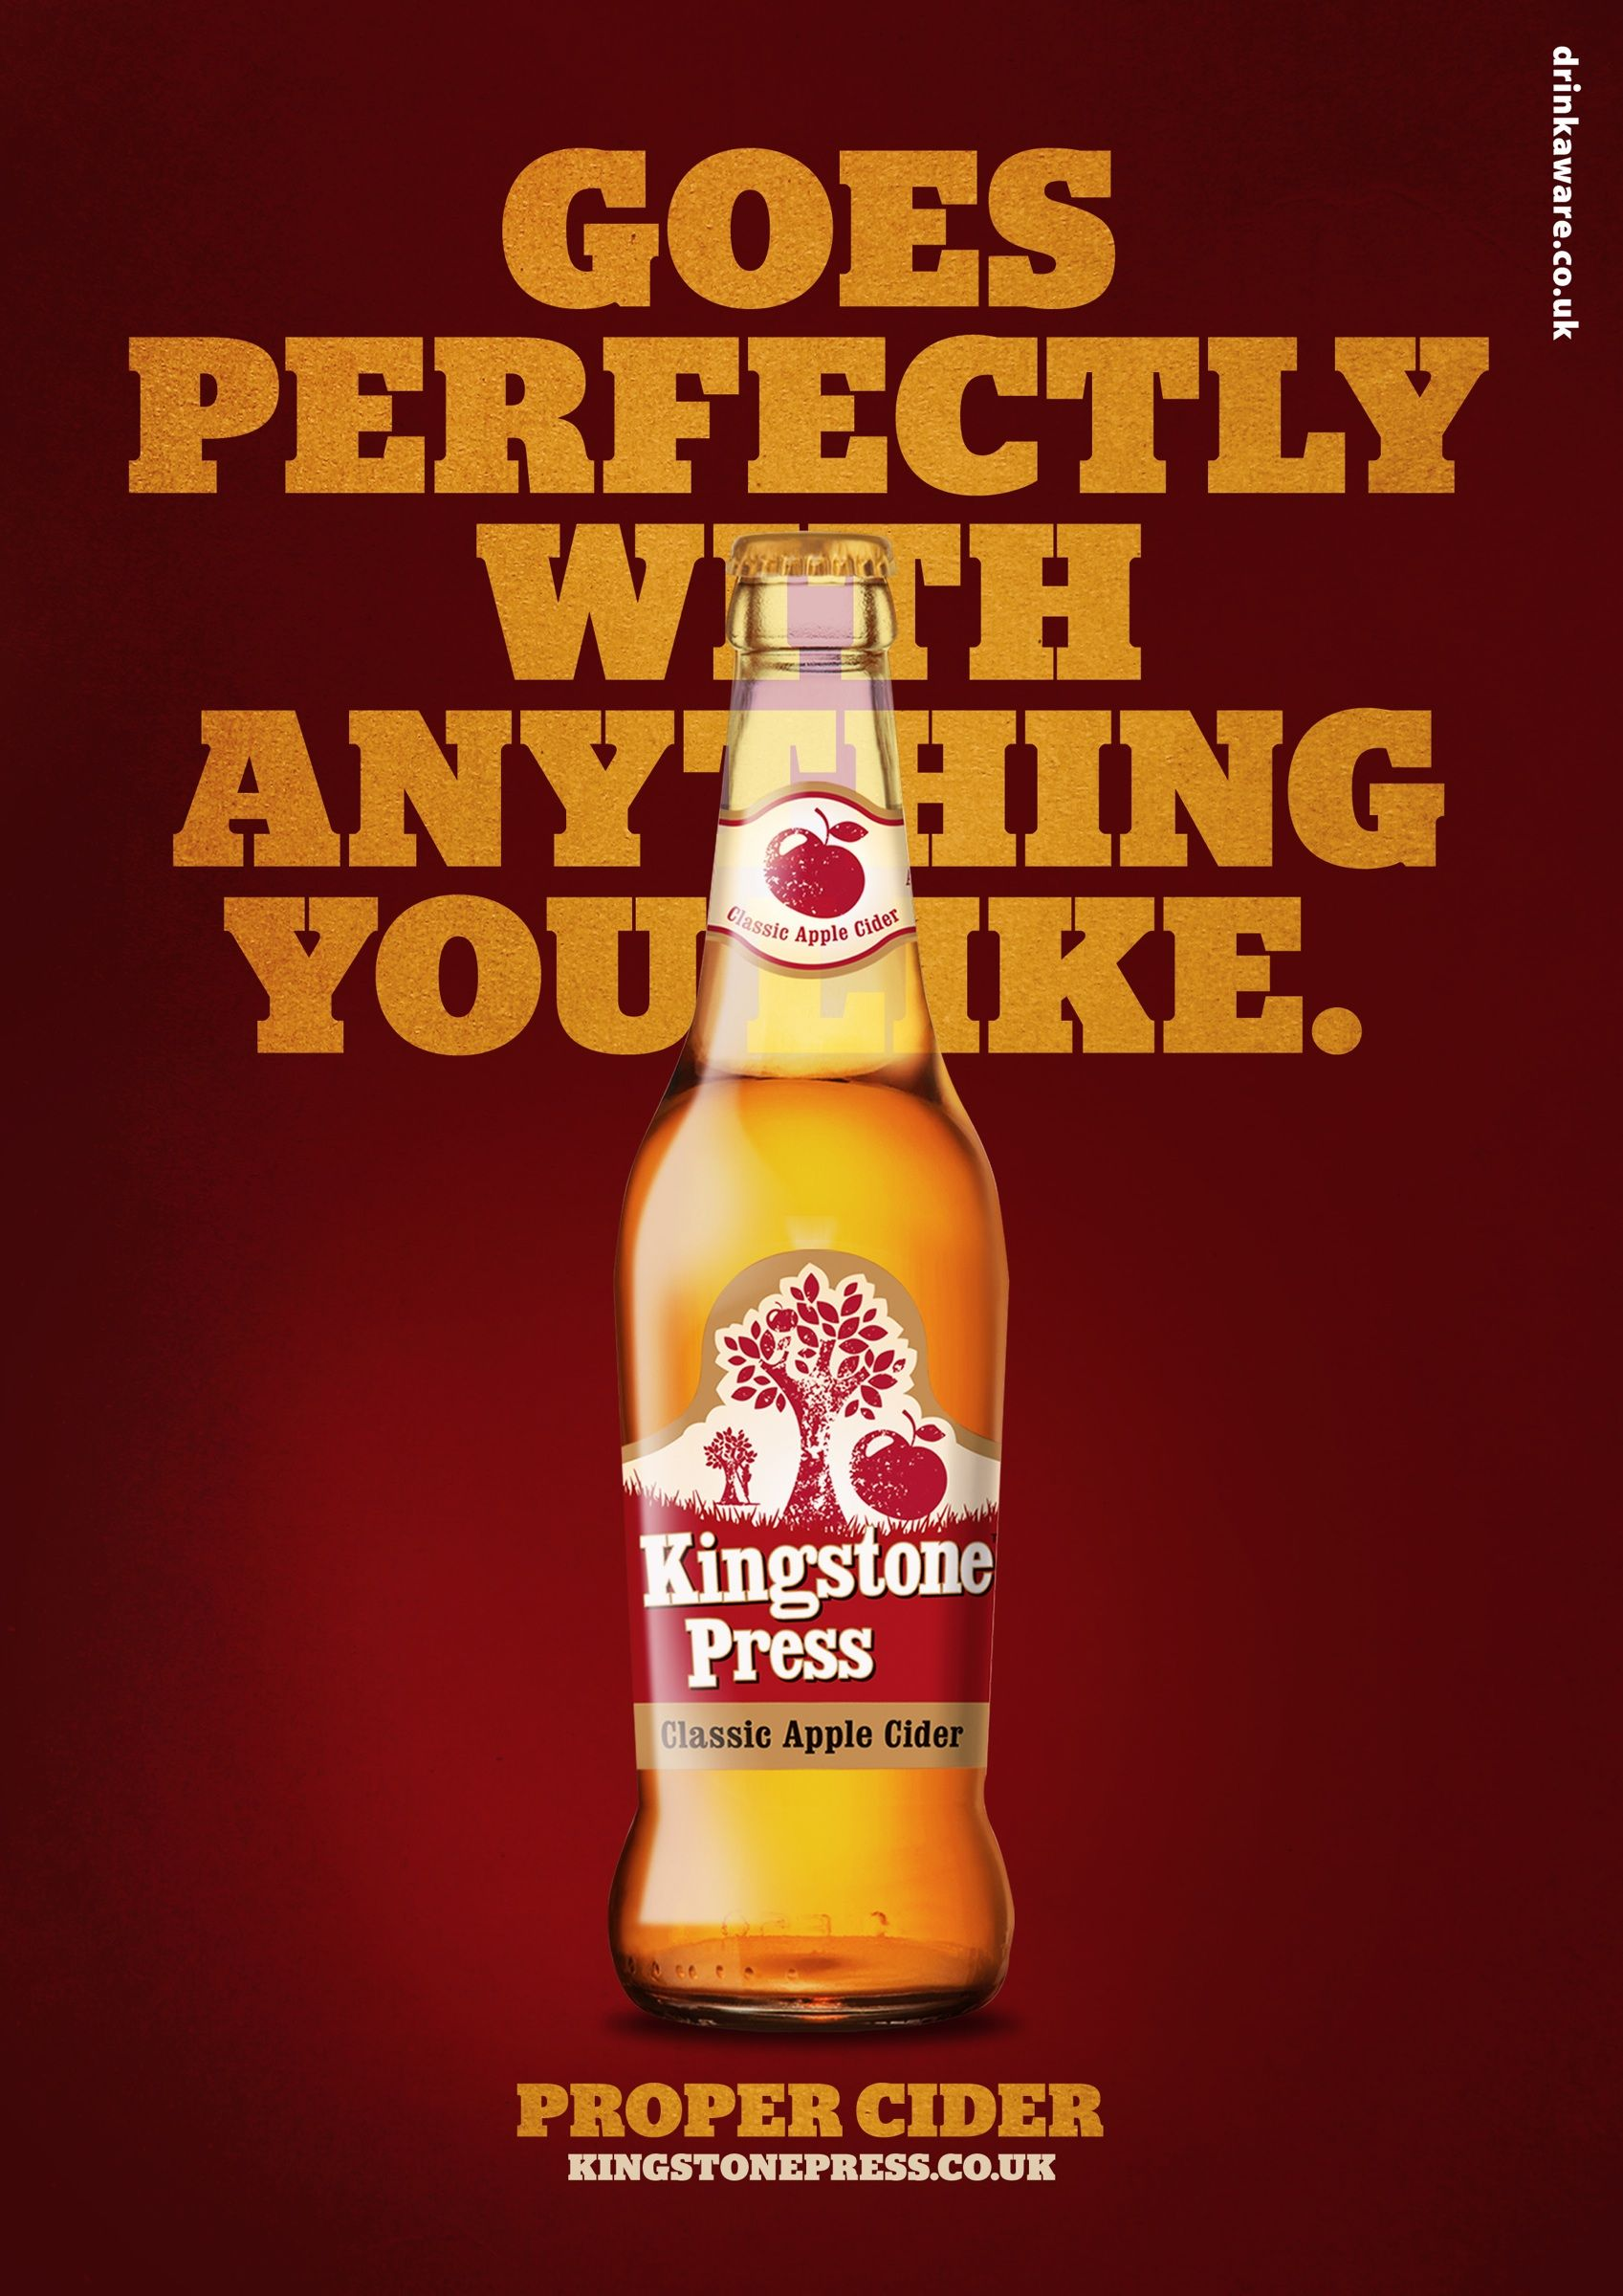 Kingstone Press Perfectly Ads Of The World Corona Beer Bottle Perfection Creative Advertising Campaign